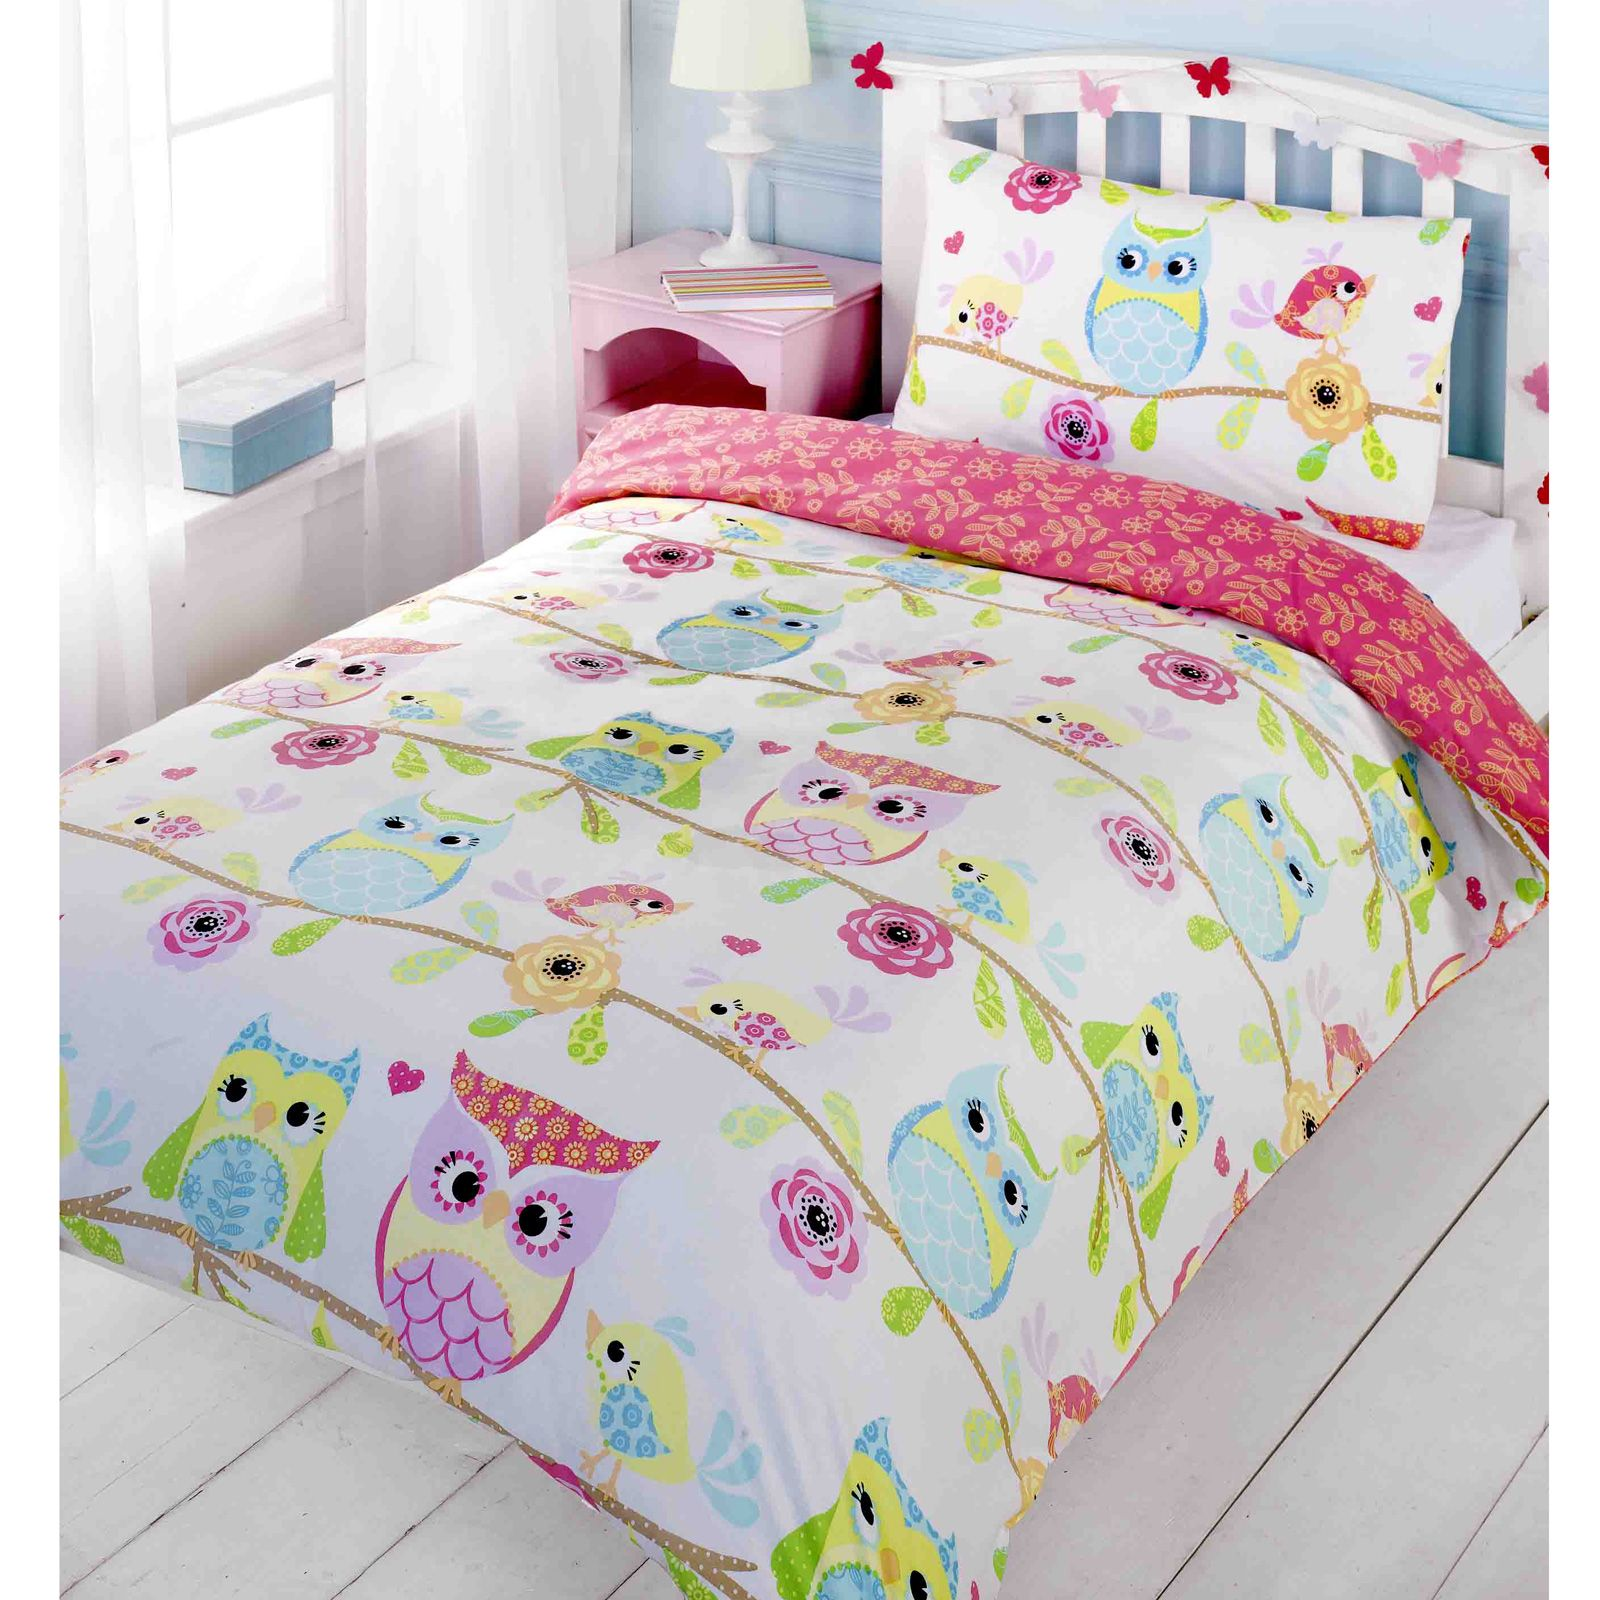 owl themed duvet cover sets available in junior single double bedding free p p ebay